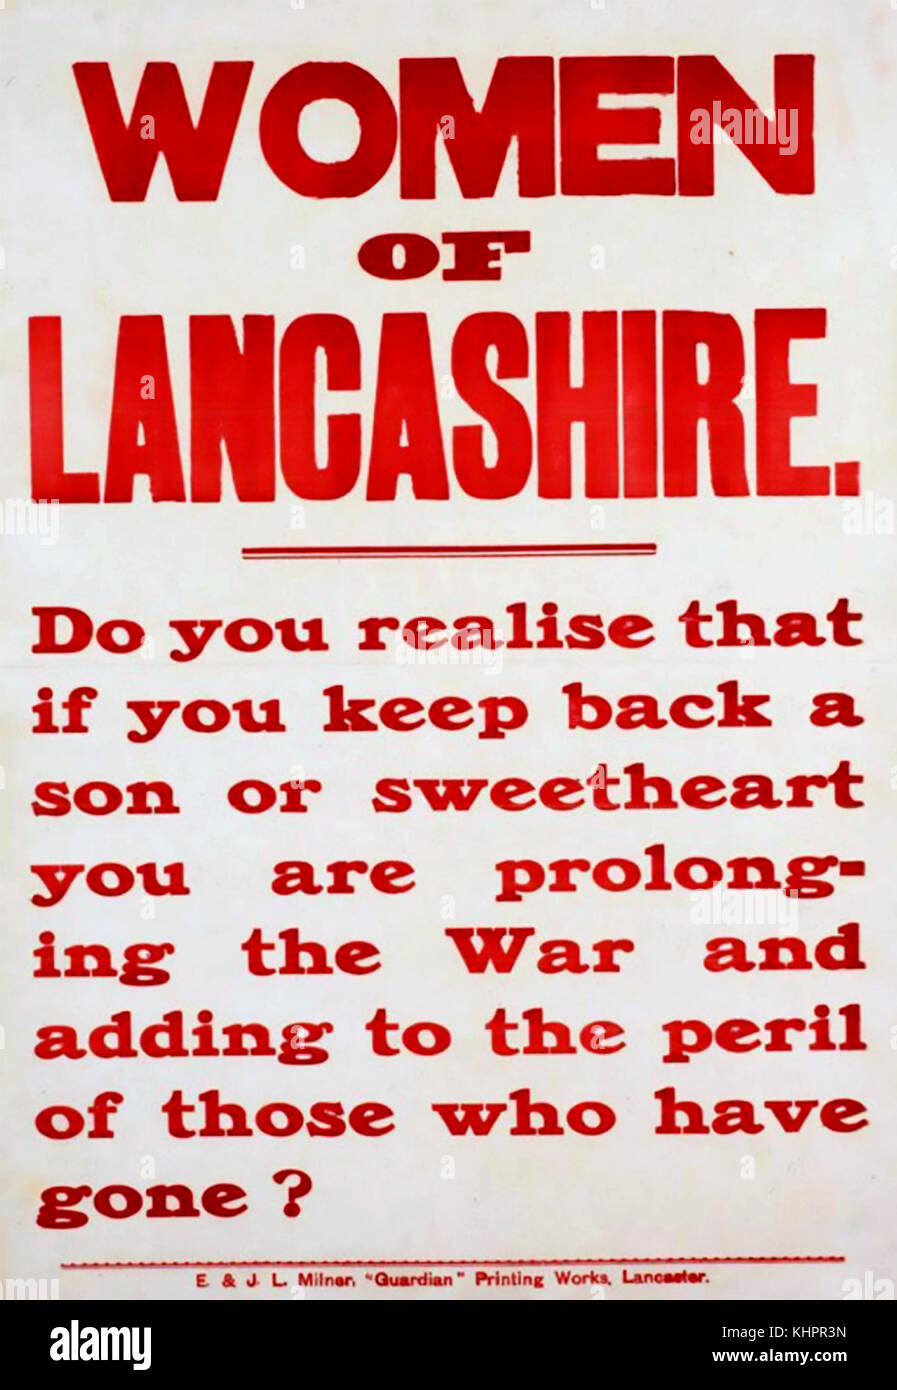 WOMAN OF LANCASHIRE  British First World War recruiting poster about 1915 - Stock Image